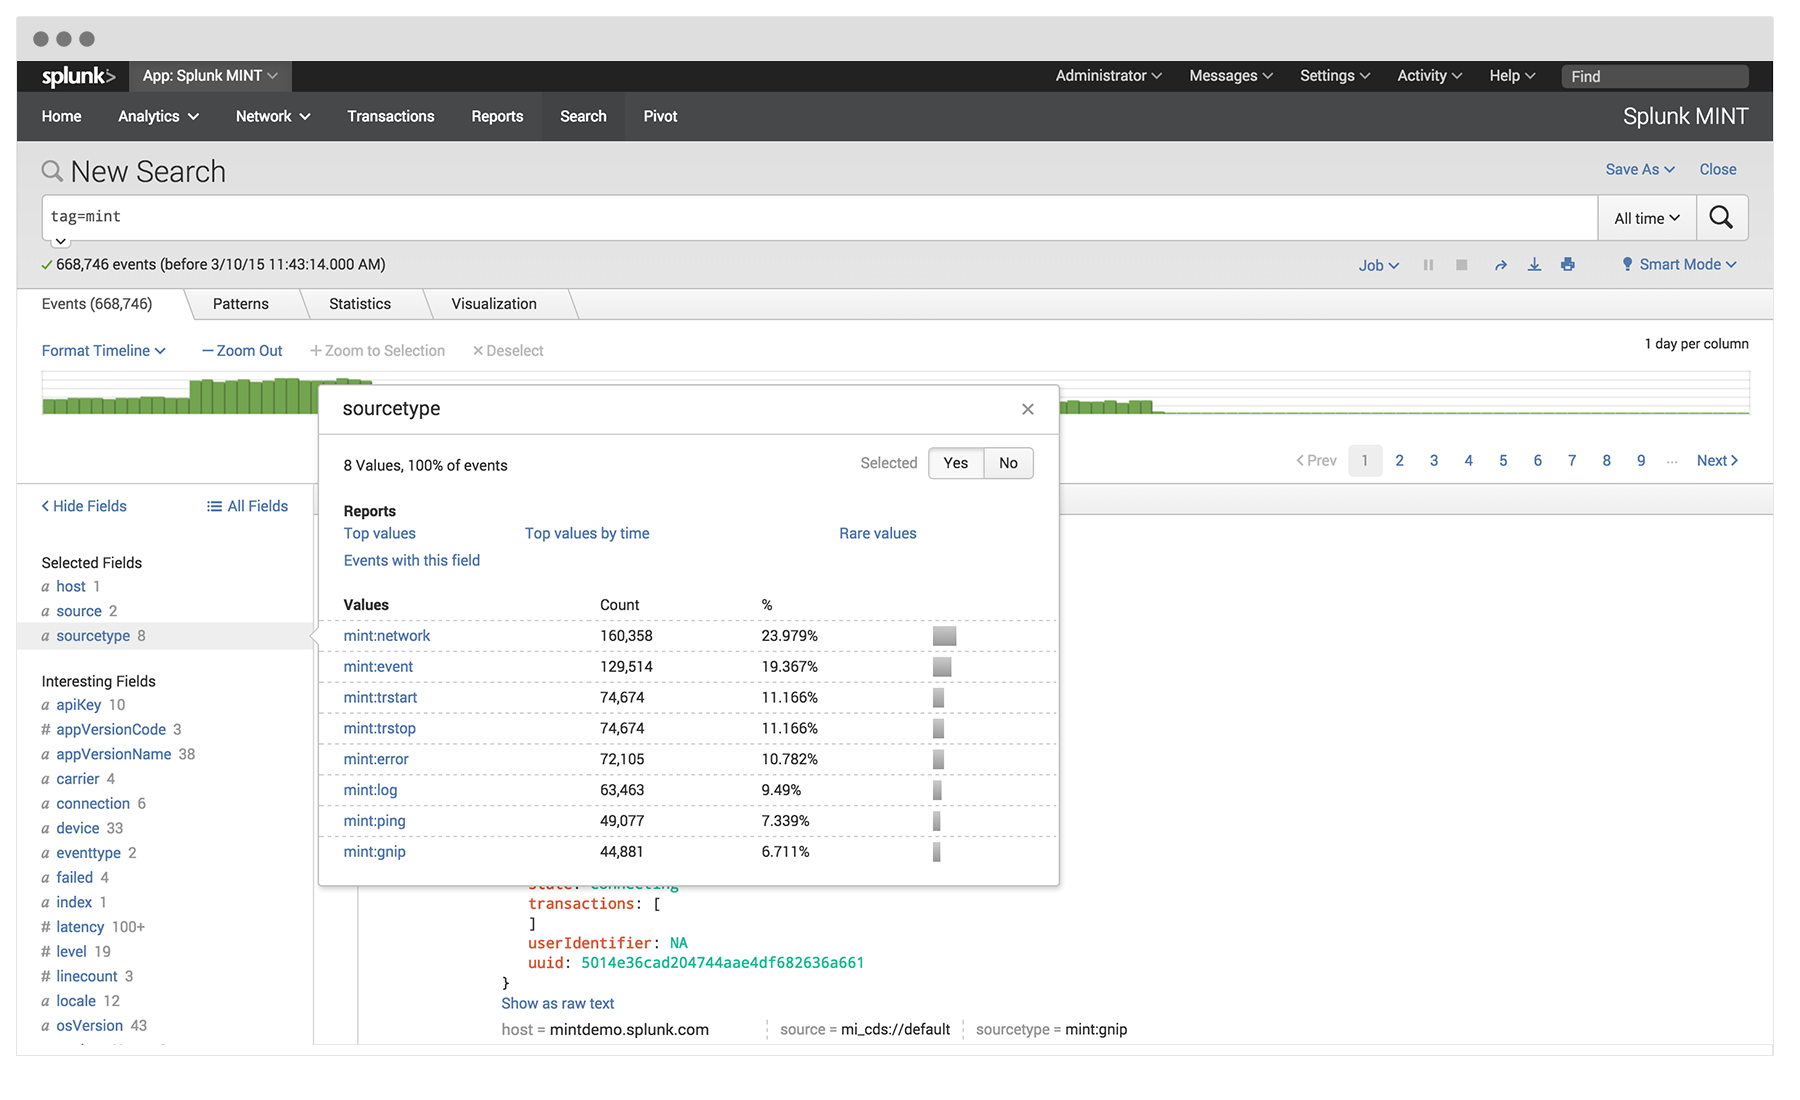 Splunk MINT | Mobile APM and Operational Intelligence for Android